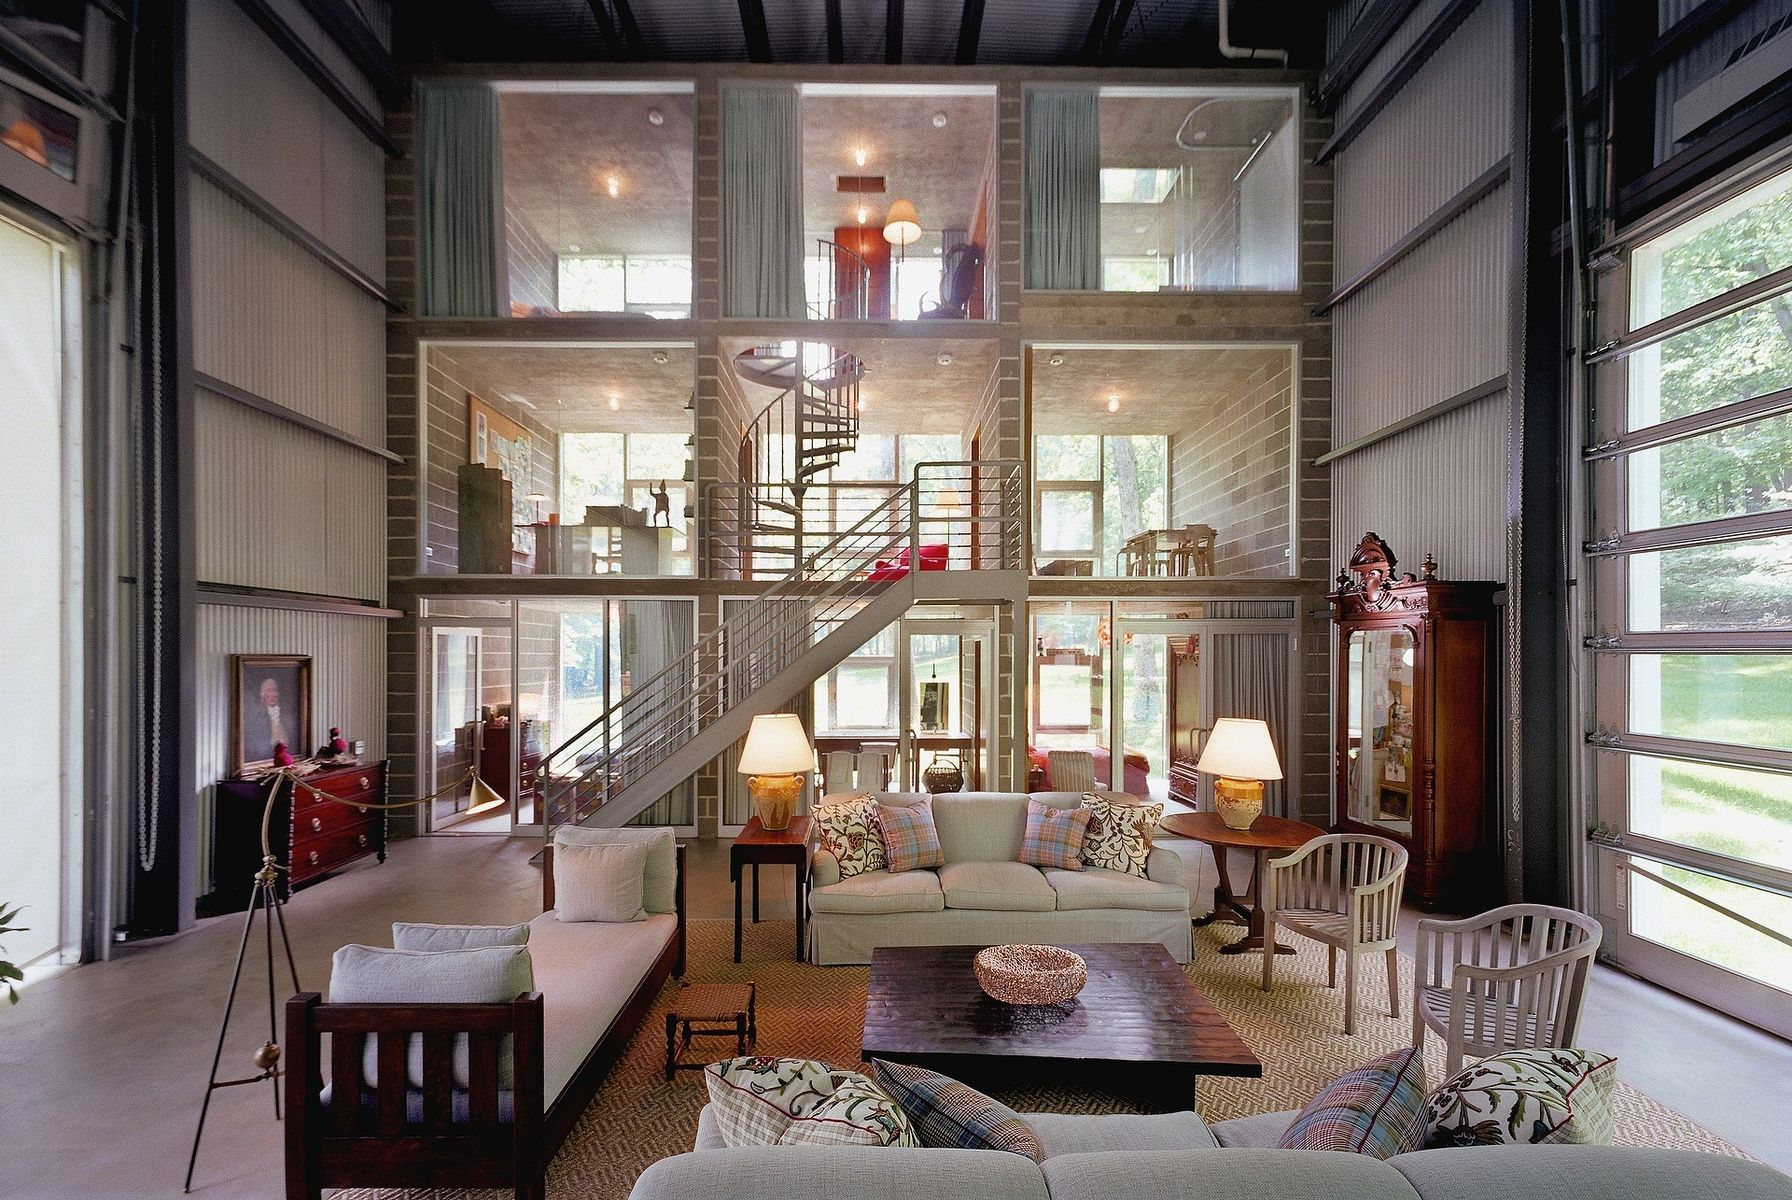 container house interior. A Completely Bizarre Home  Adam Kalkin Bunny Lane House Houses PETER AARON ARCHITECTURAL PHOTOGRAPHY Container